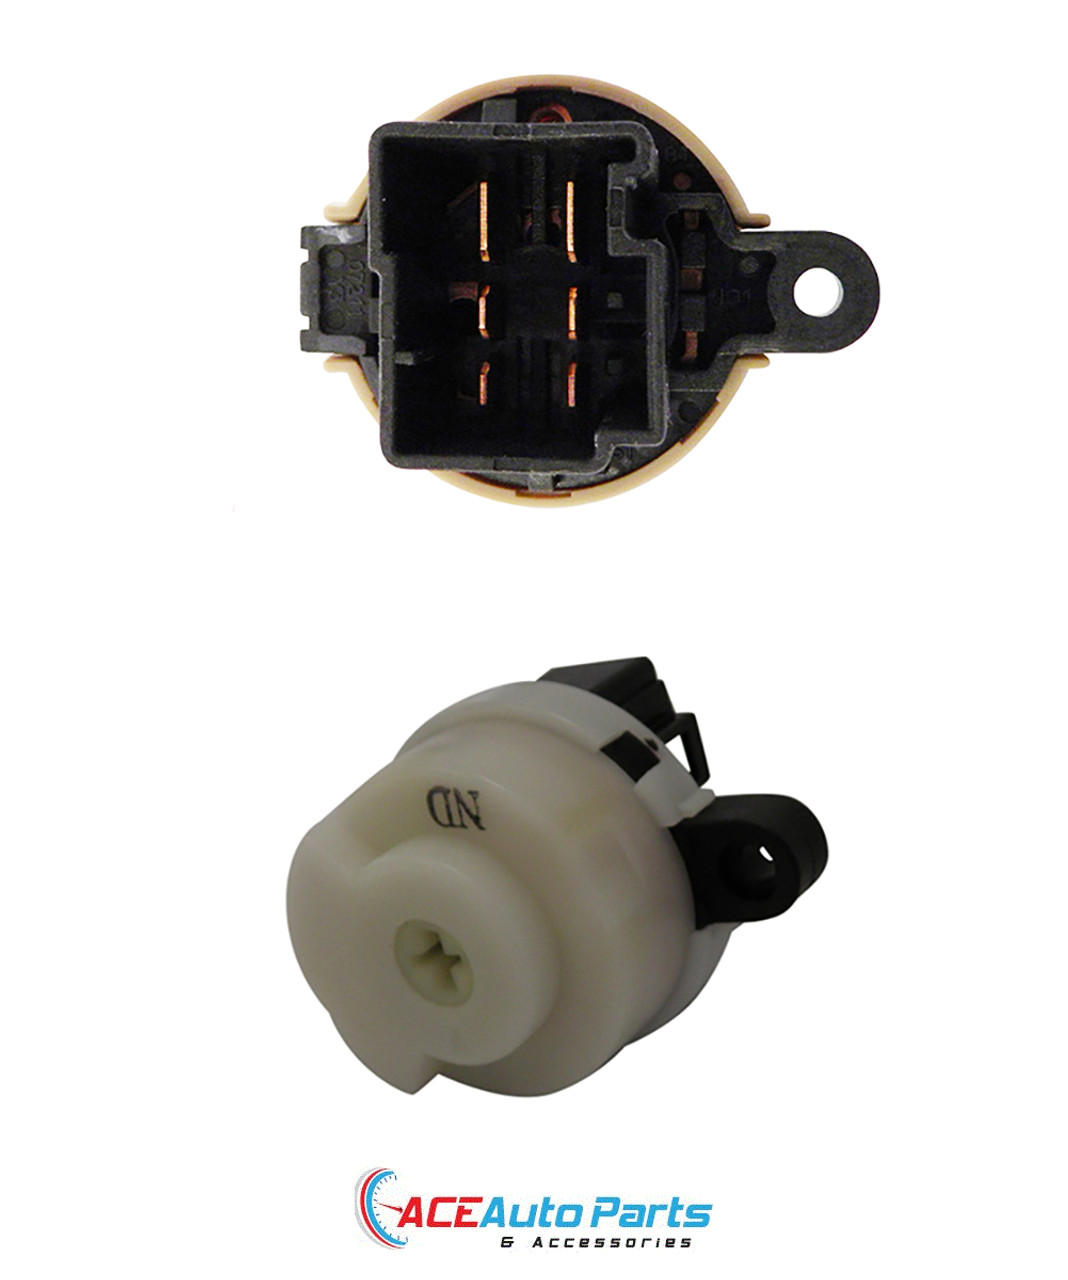 Ignition Barrel + Switch For Ford Ranger PJ + PK 2006 to 2009 With 2 Keys